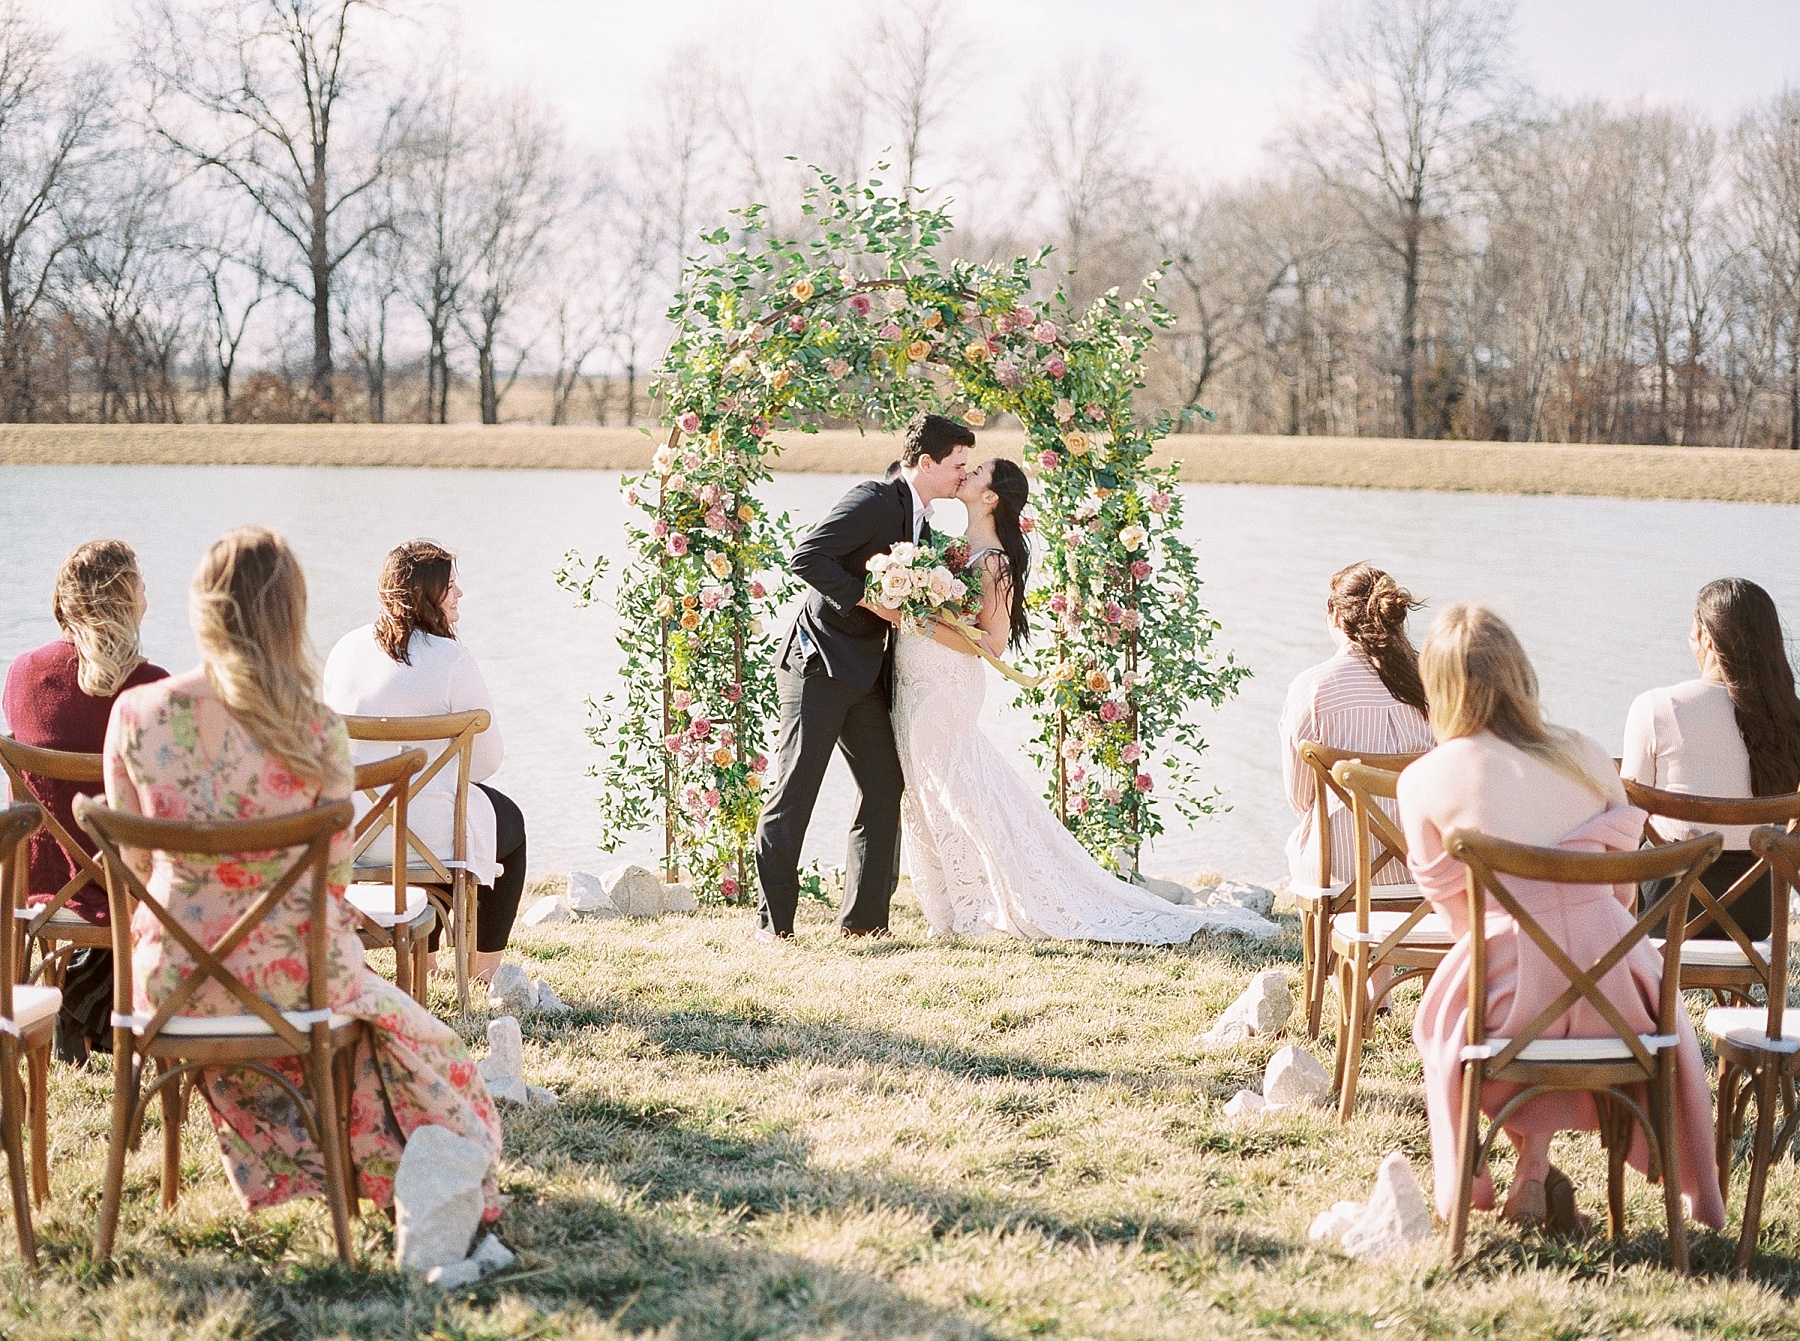 Intimate Lakeside Elopement at Emerson Fields All White Wedding Venue by Kelsi Kliethermes Photography Best Missouri and Maui Wedding Photographer_0019.jpg